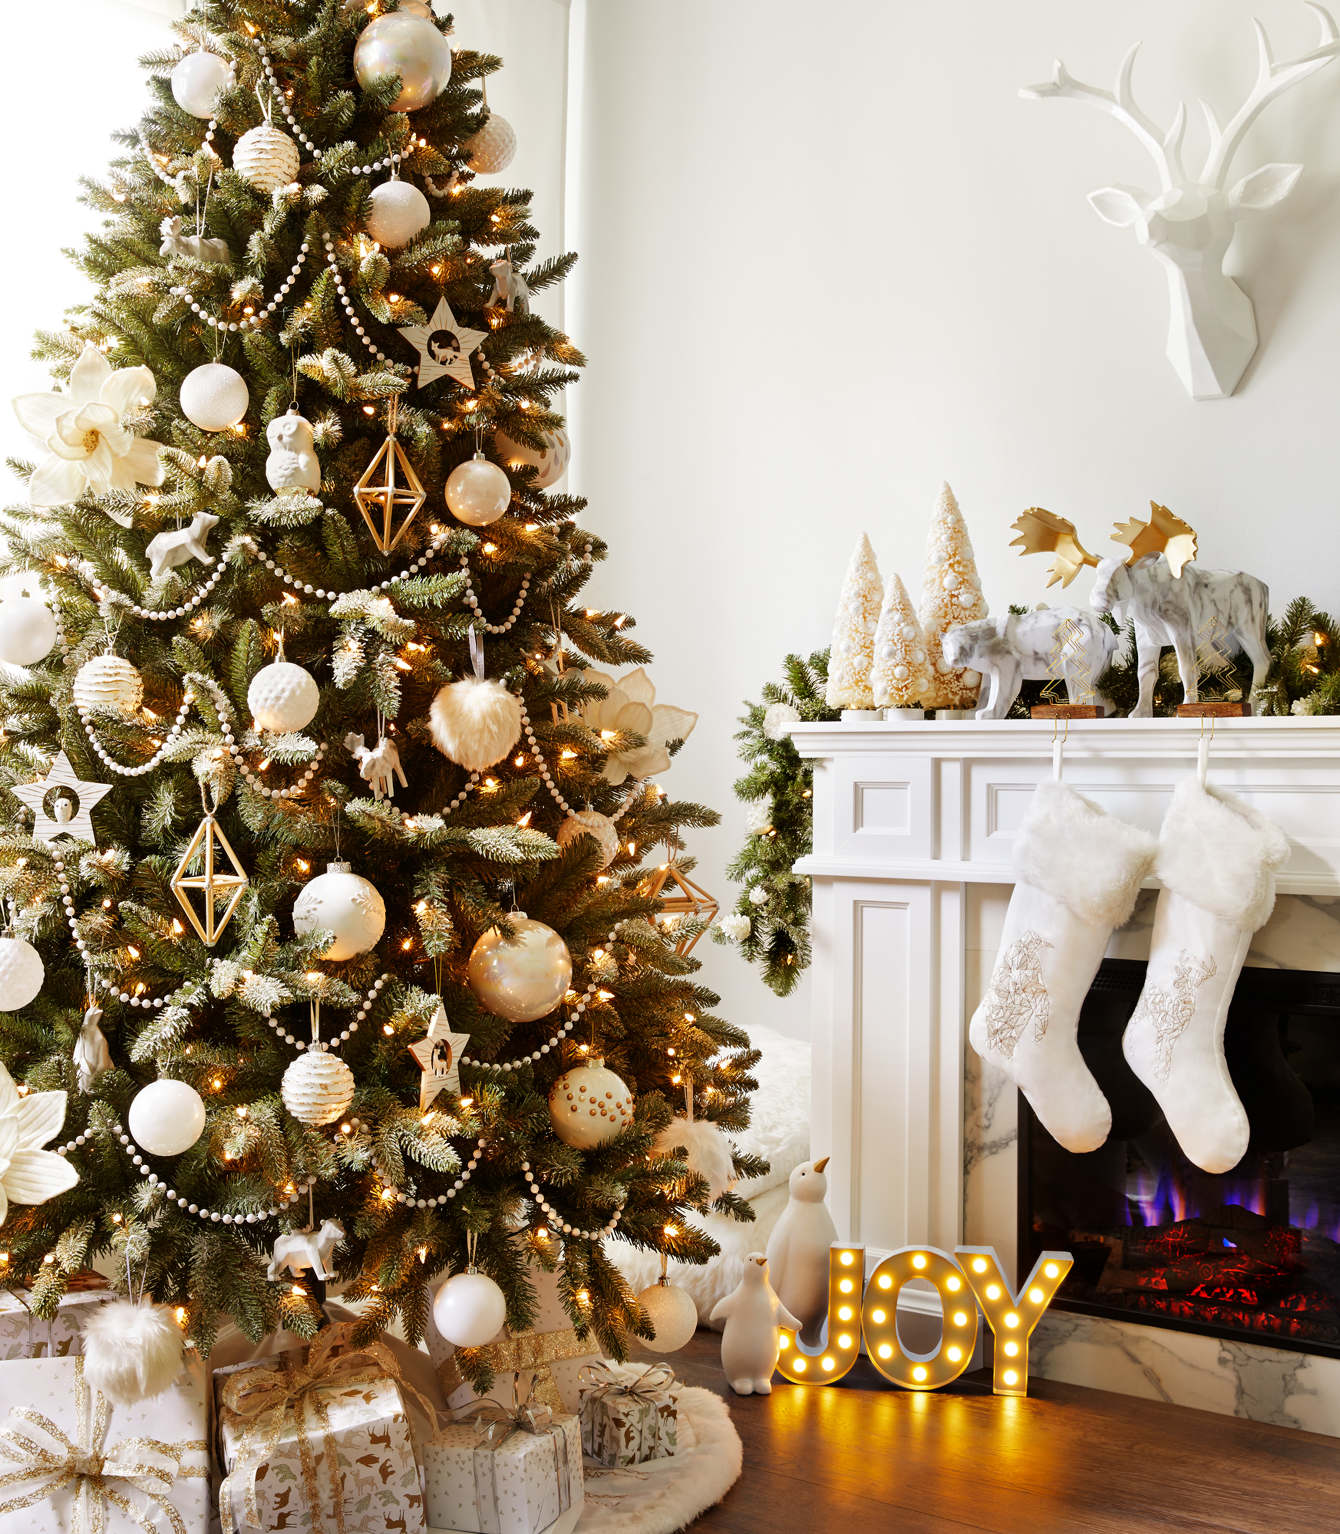 Canadian tire Wow guide - holiday ornaments - James Tse Photography